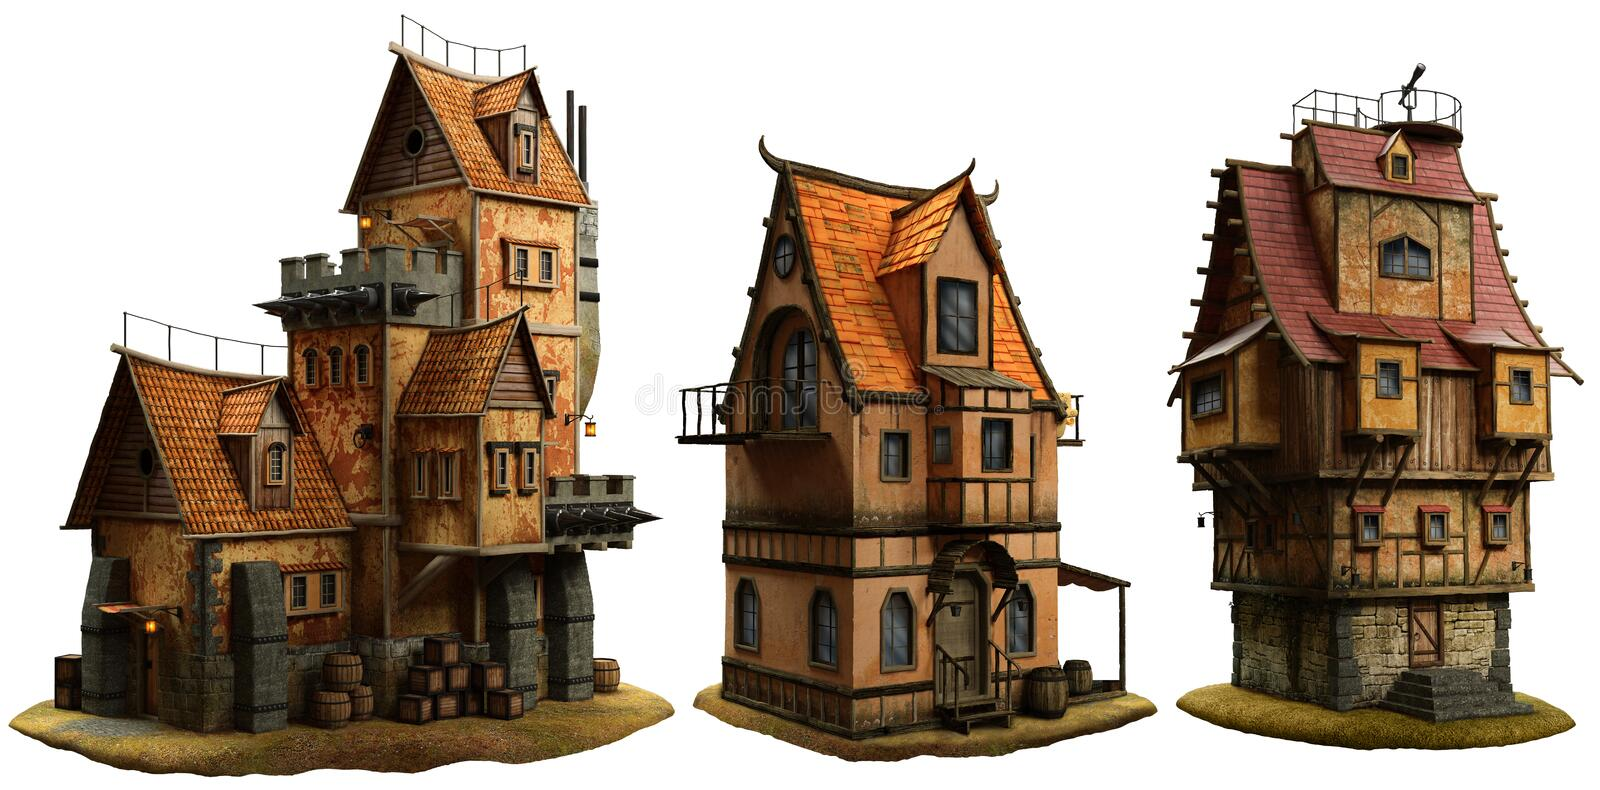 Fantasy medieval buildings royalty free illustration